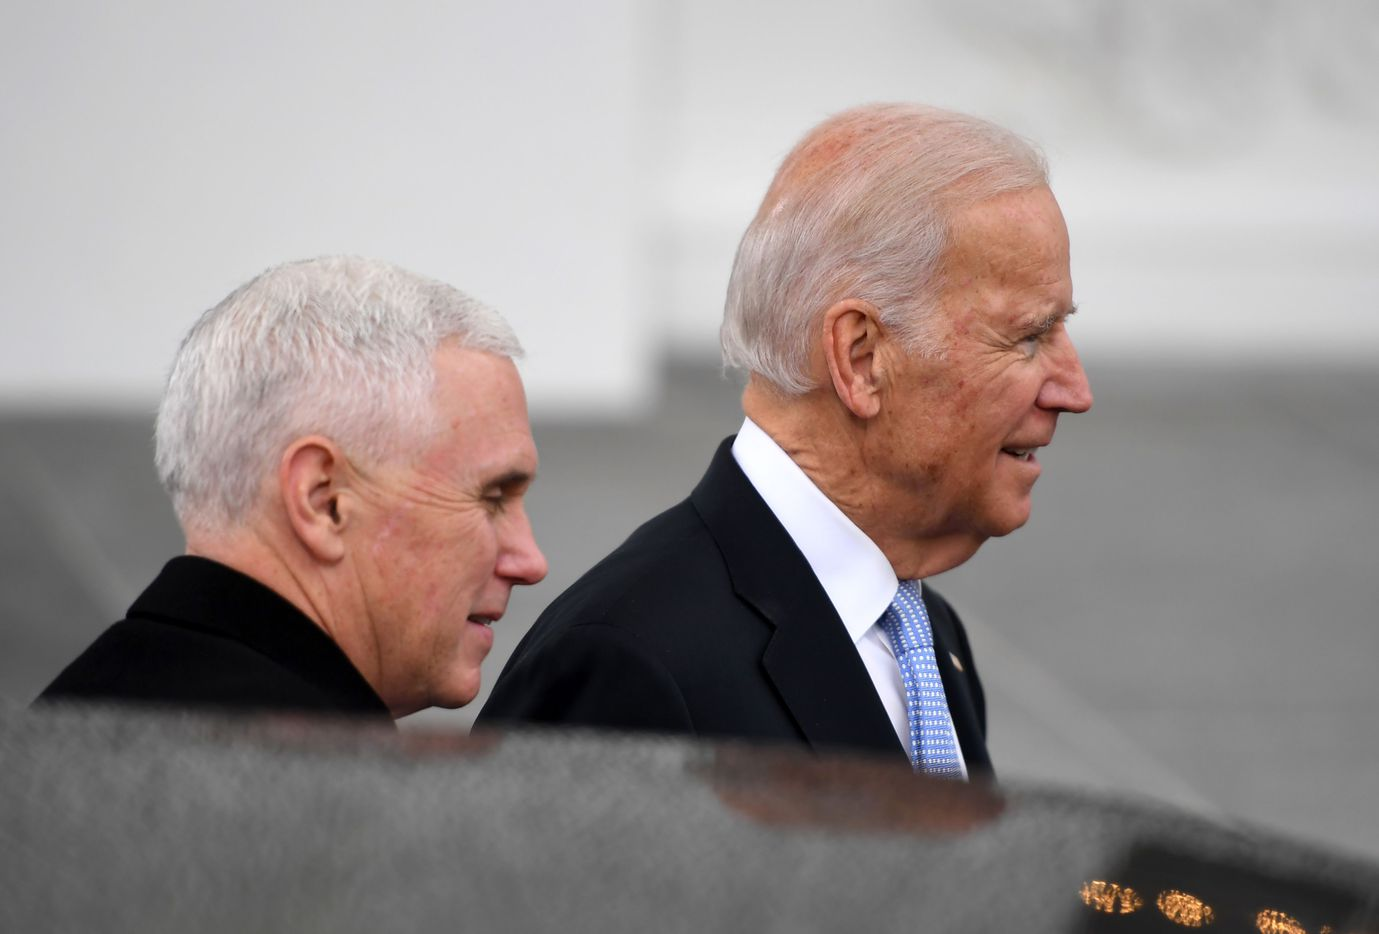 US Vice President Joe Biden greets Vice president-elect Mike Pence to the White House in Washington.